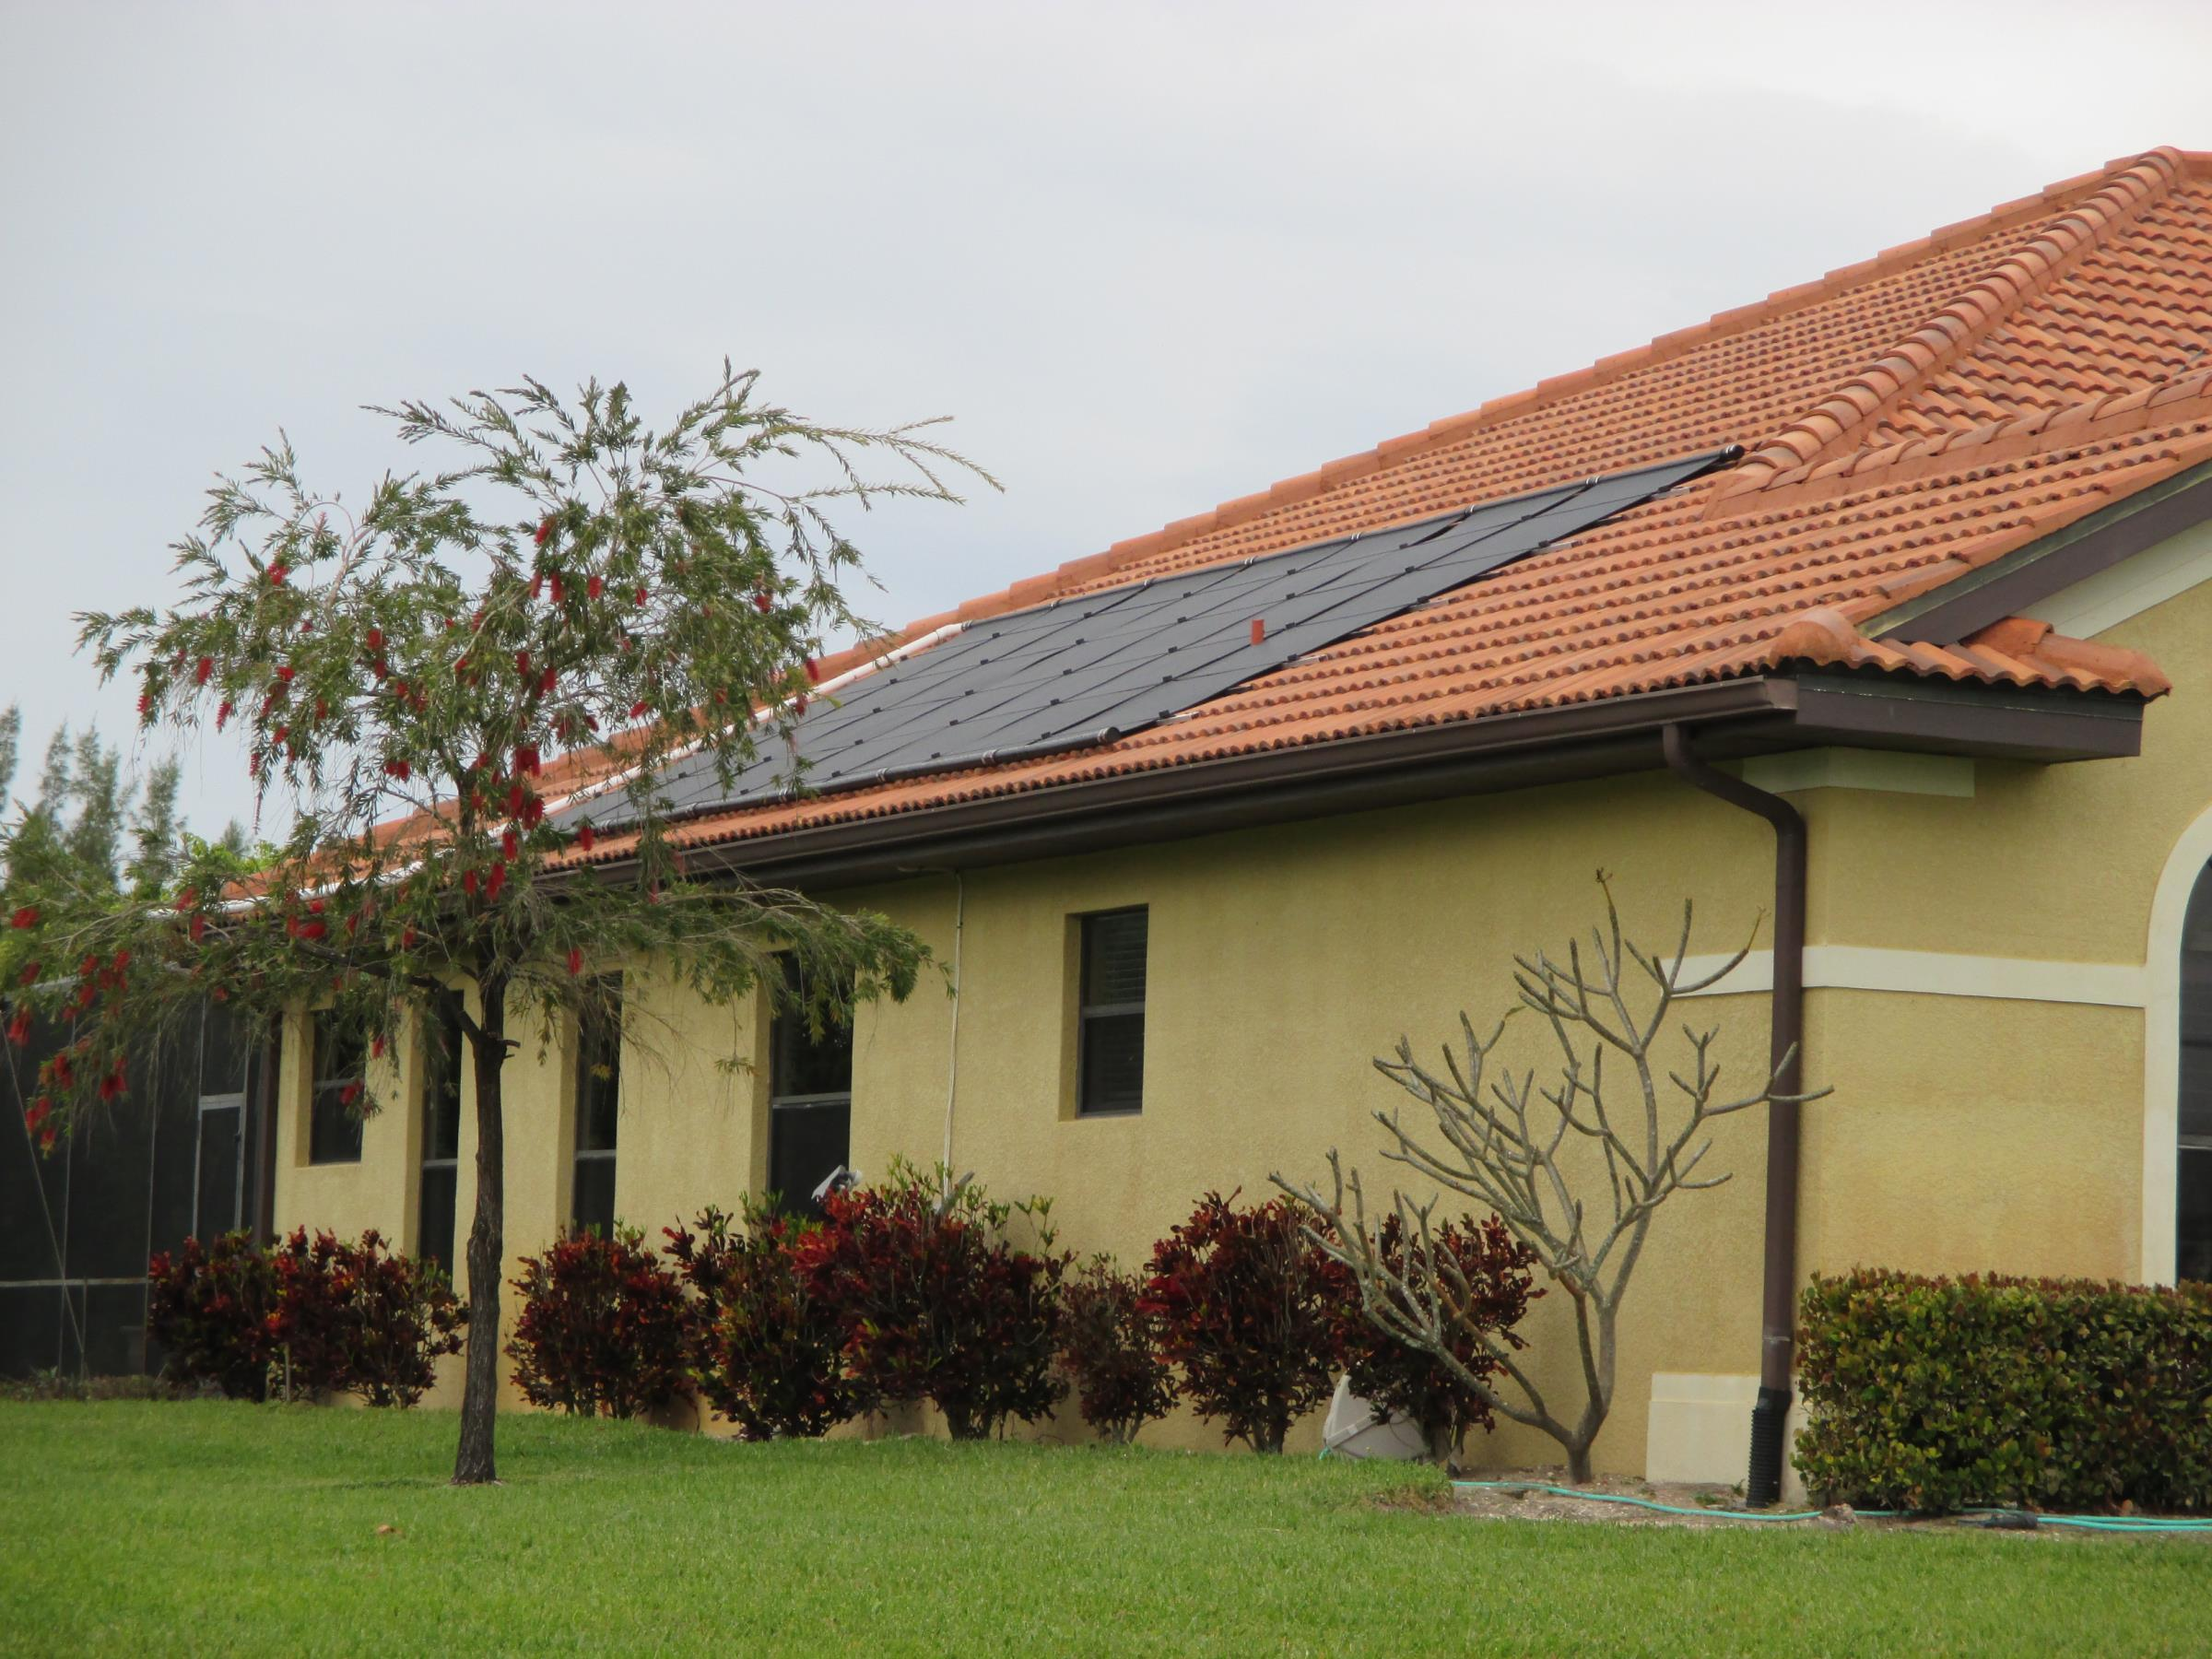 Solar Pool Heating Panels Installed on a Tile Roof